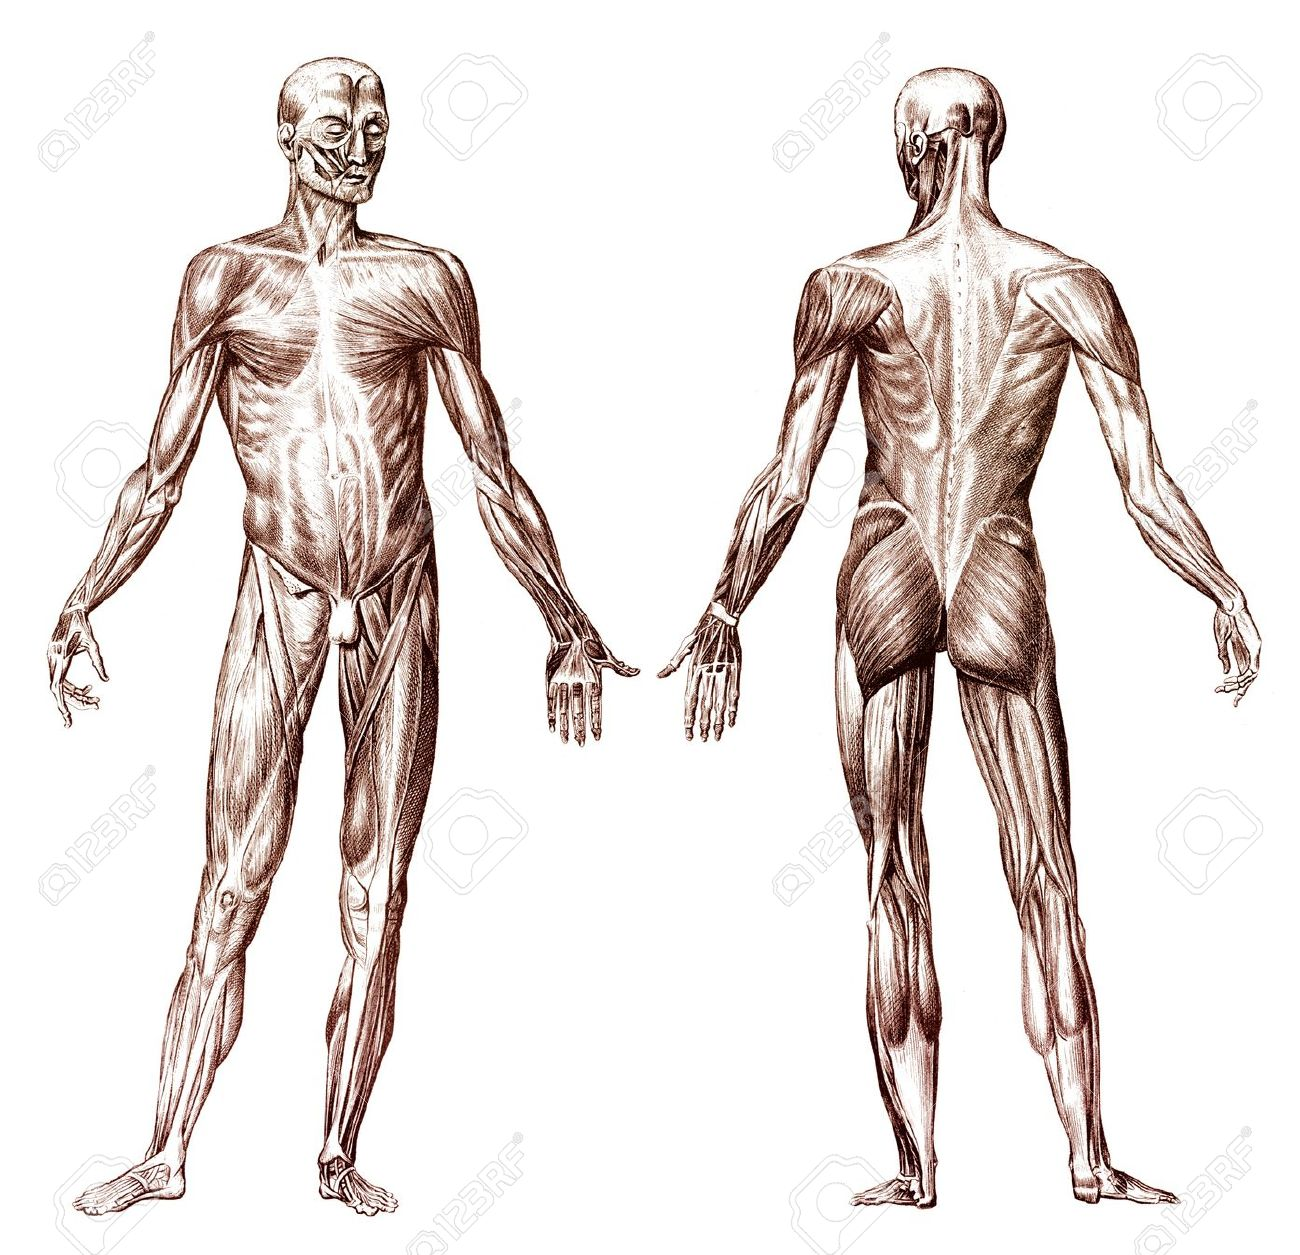 Old Engraving Of Human Anatomy Muscular System Stock Photo Picture